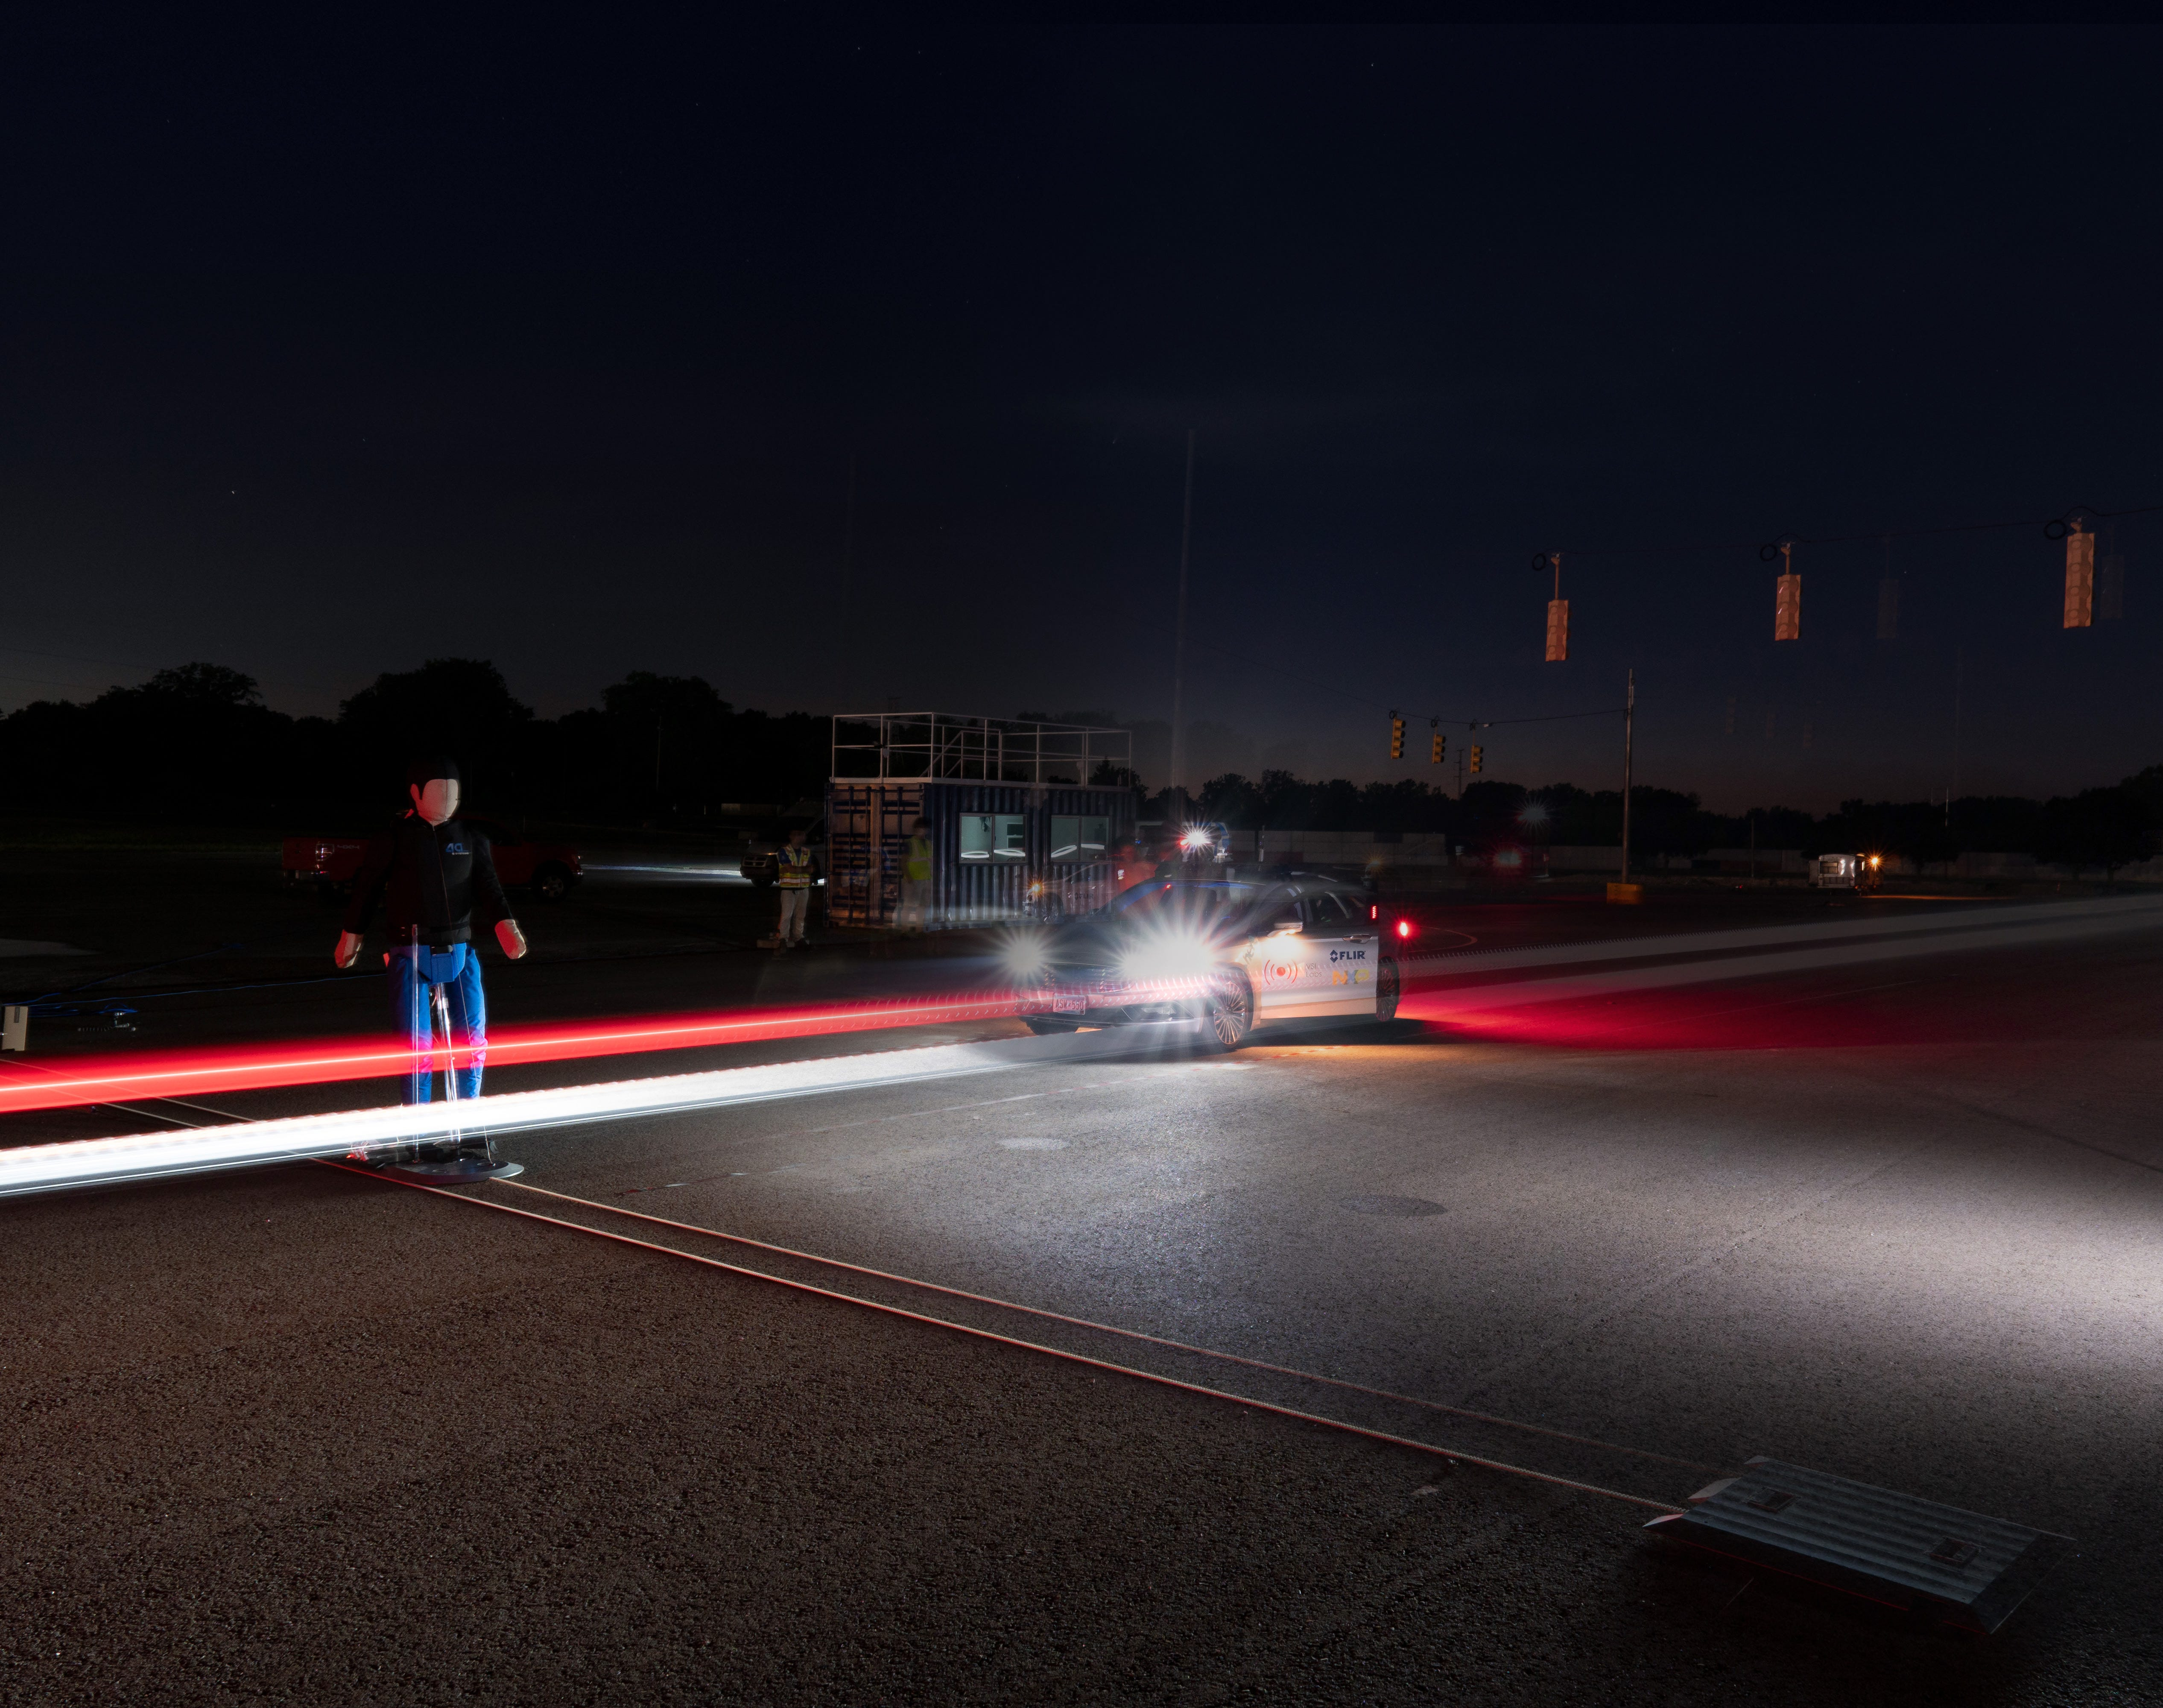 Night vision for cars: Fighting the pedestrian safety crisis